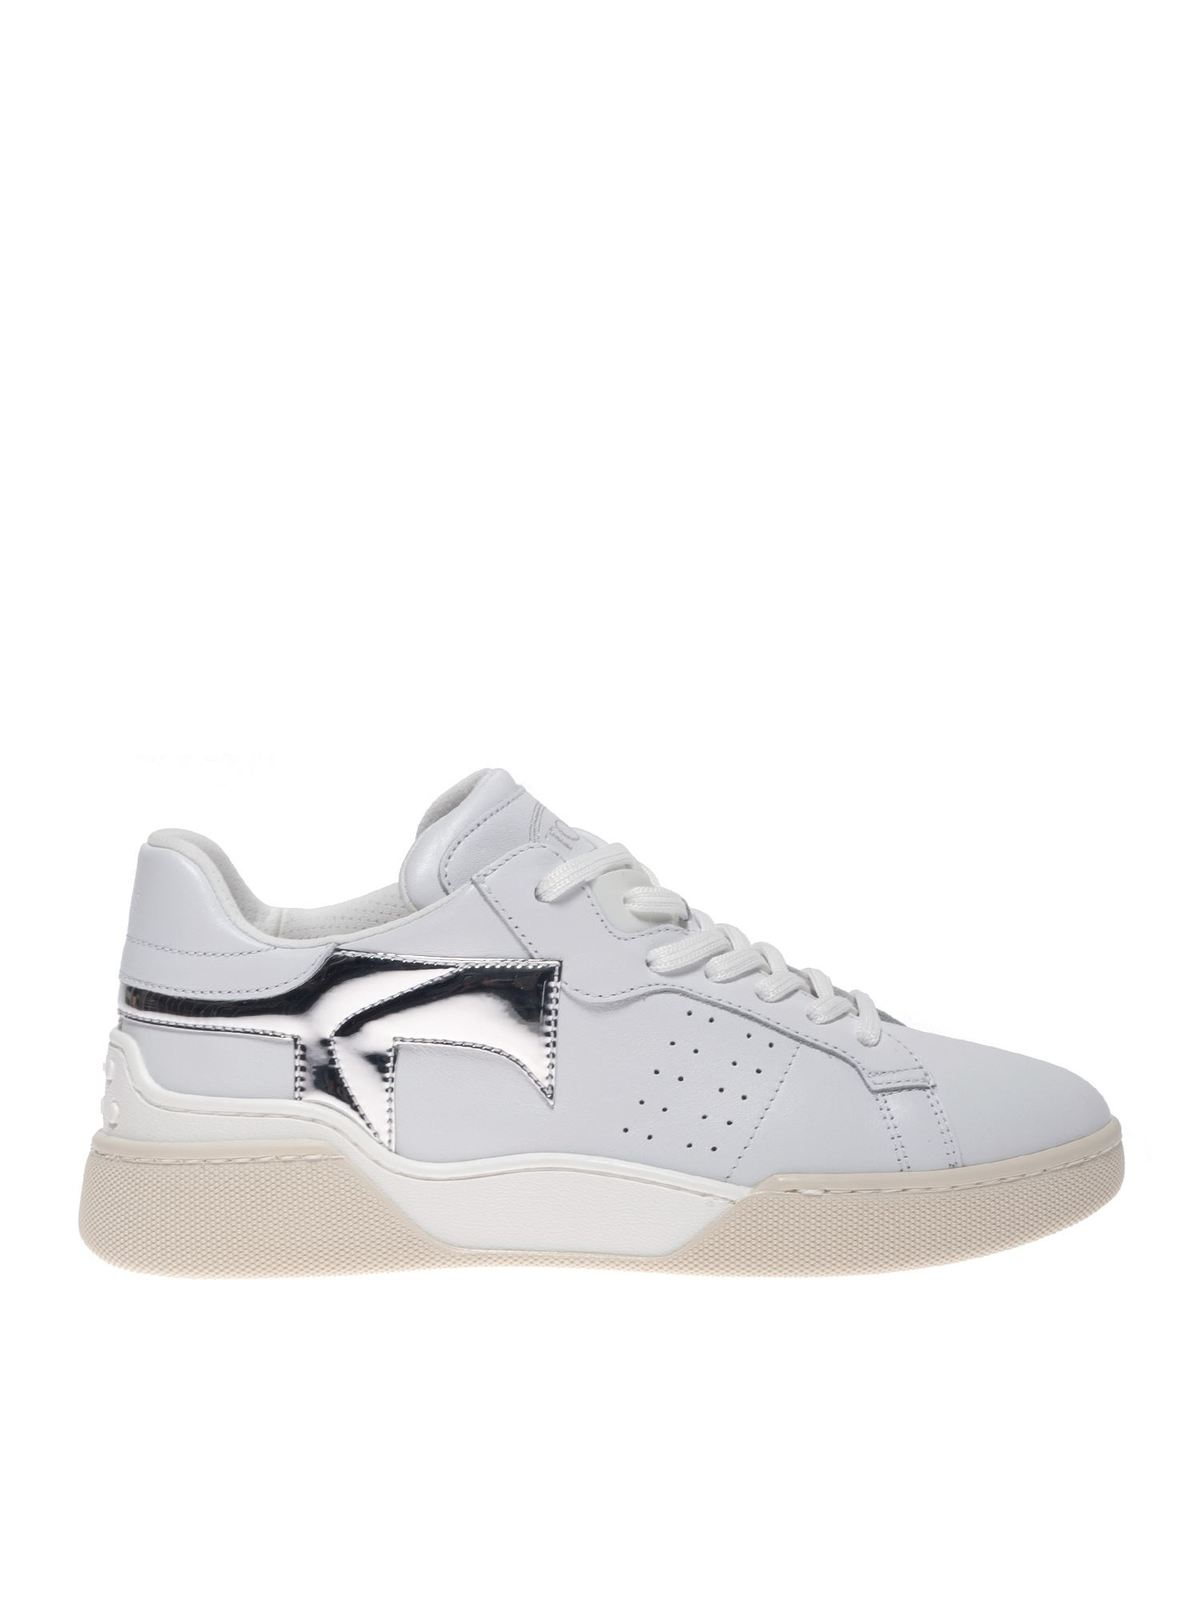 Tod's Platforms WHITE SNEAKERS WITH SILVER MIRROR DETAIL